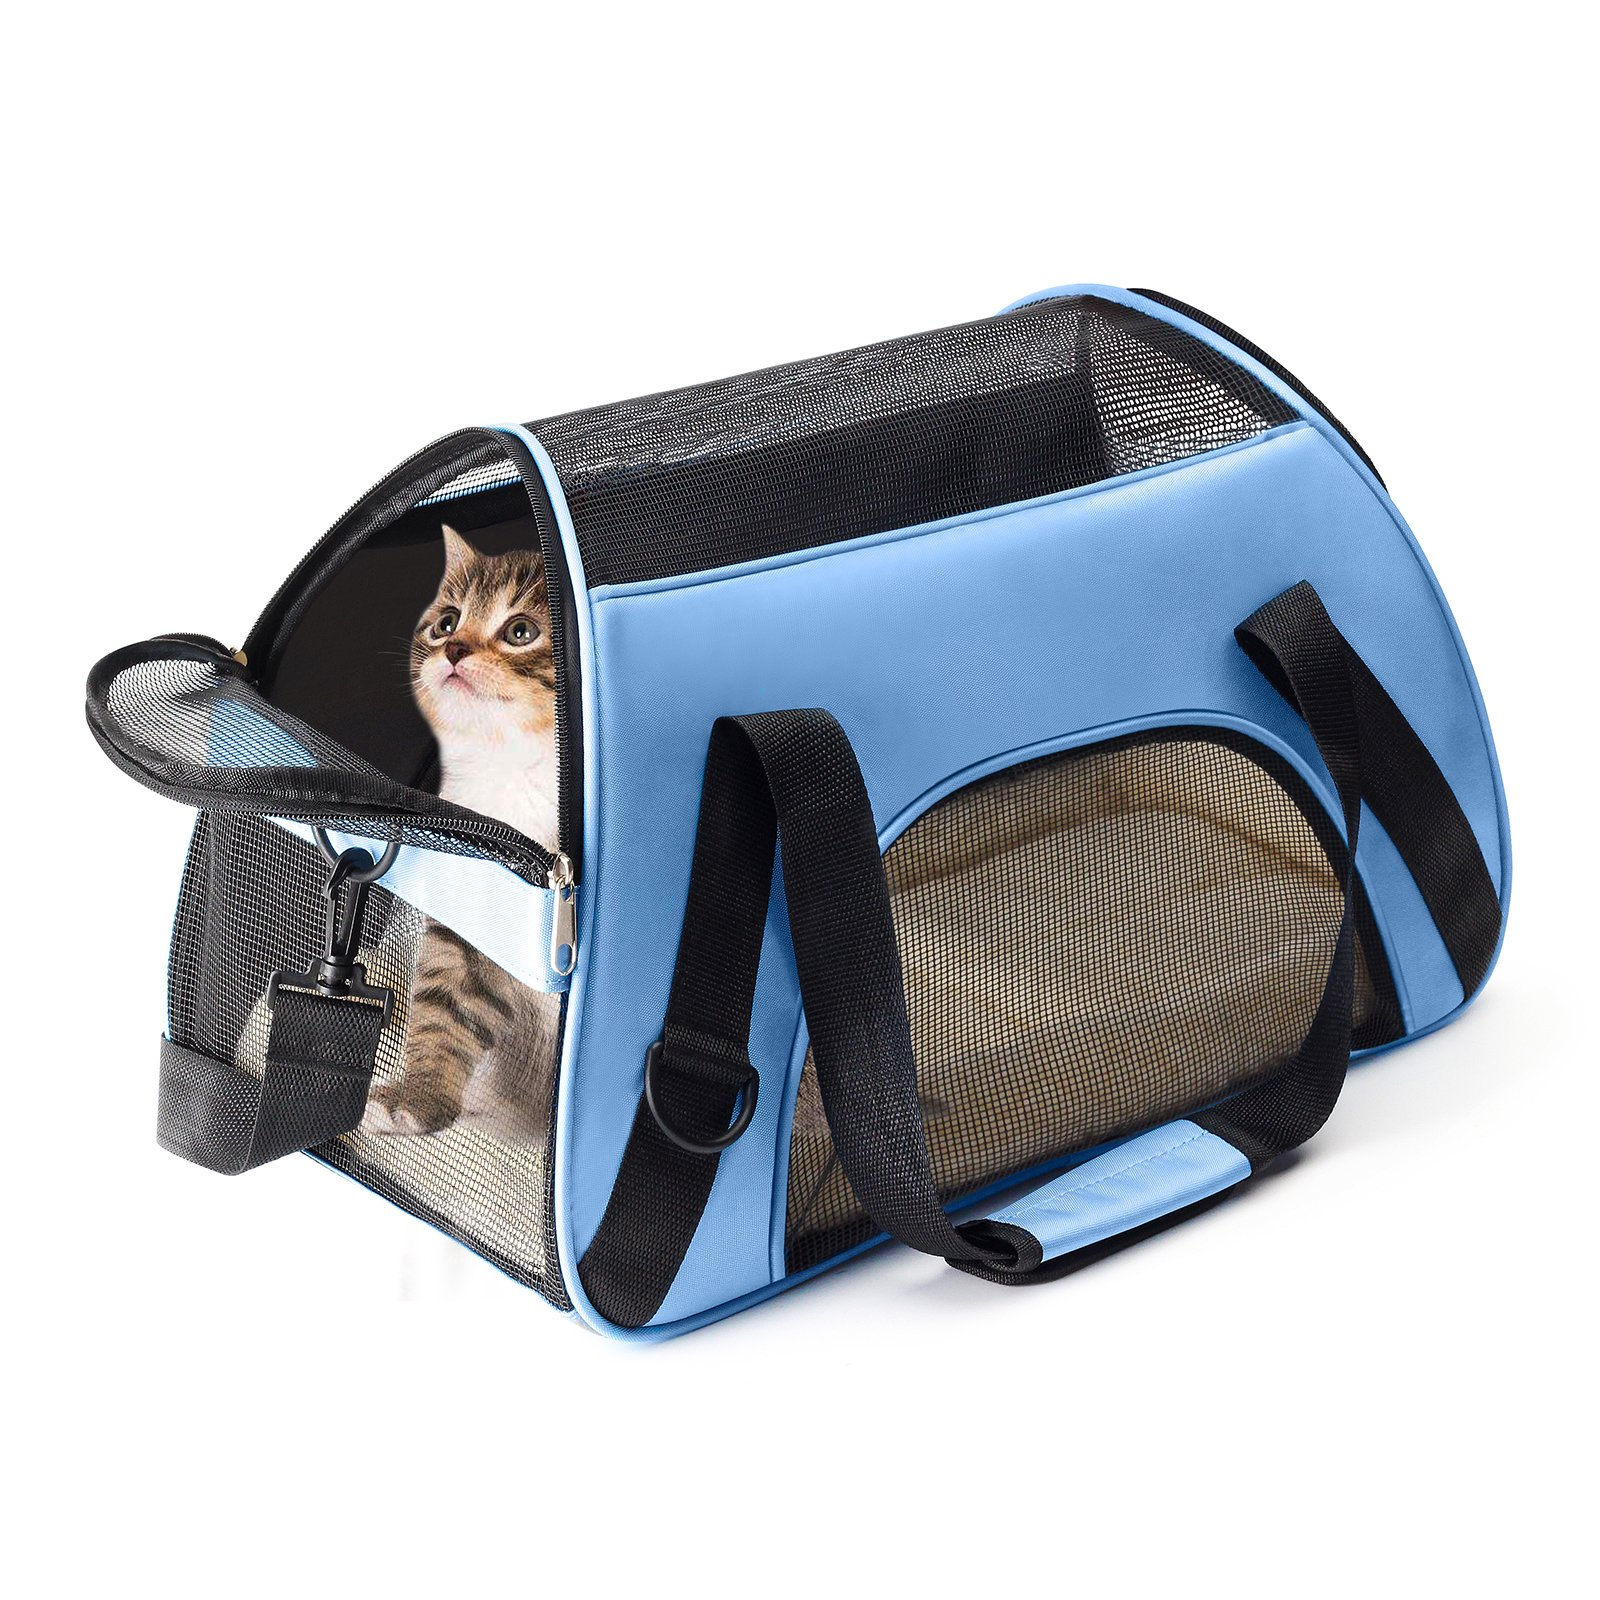 OHPA Soft Sided Portable Pet Travel Carrier Airline Approved Travel Bag Designed for Cats, Dogs Kittens and Puppies